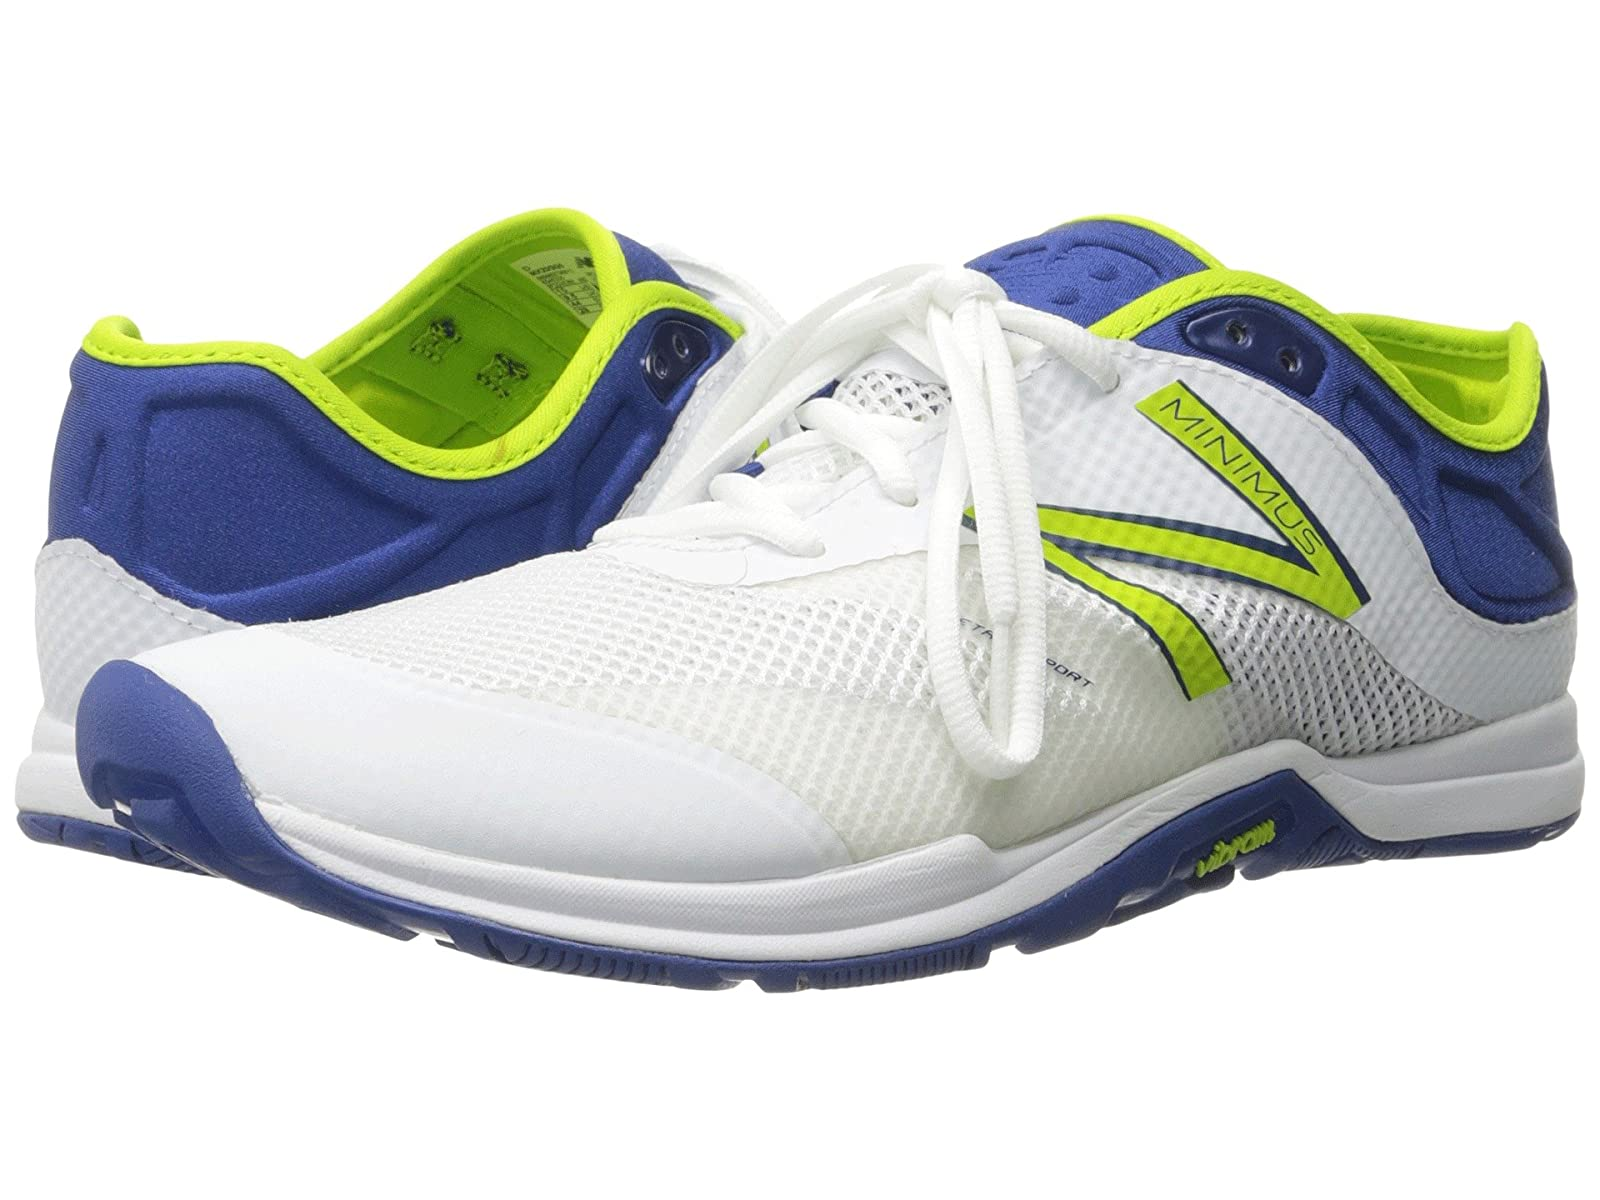 New Balance MX20v5Cheap and distinctive eye-catching shoes